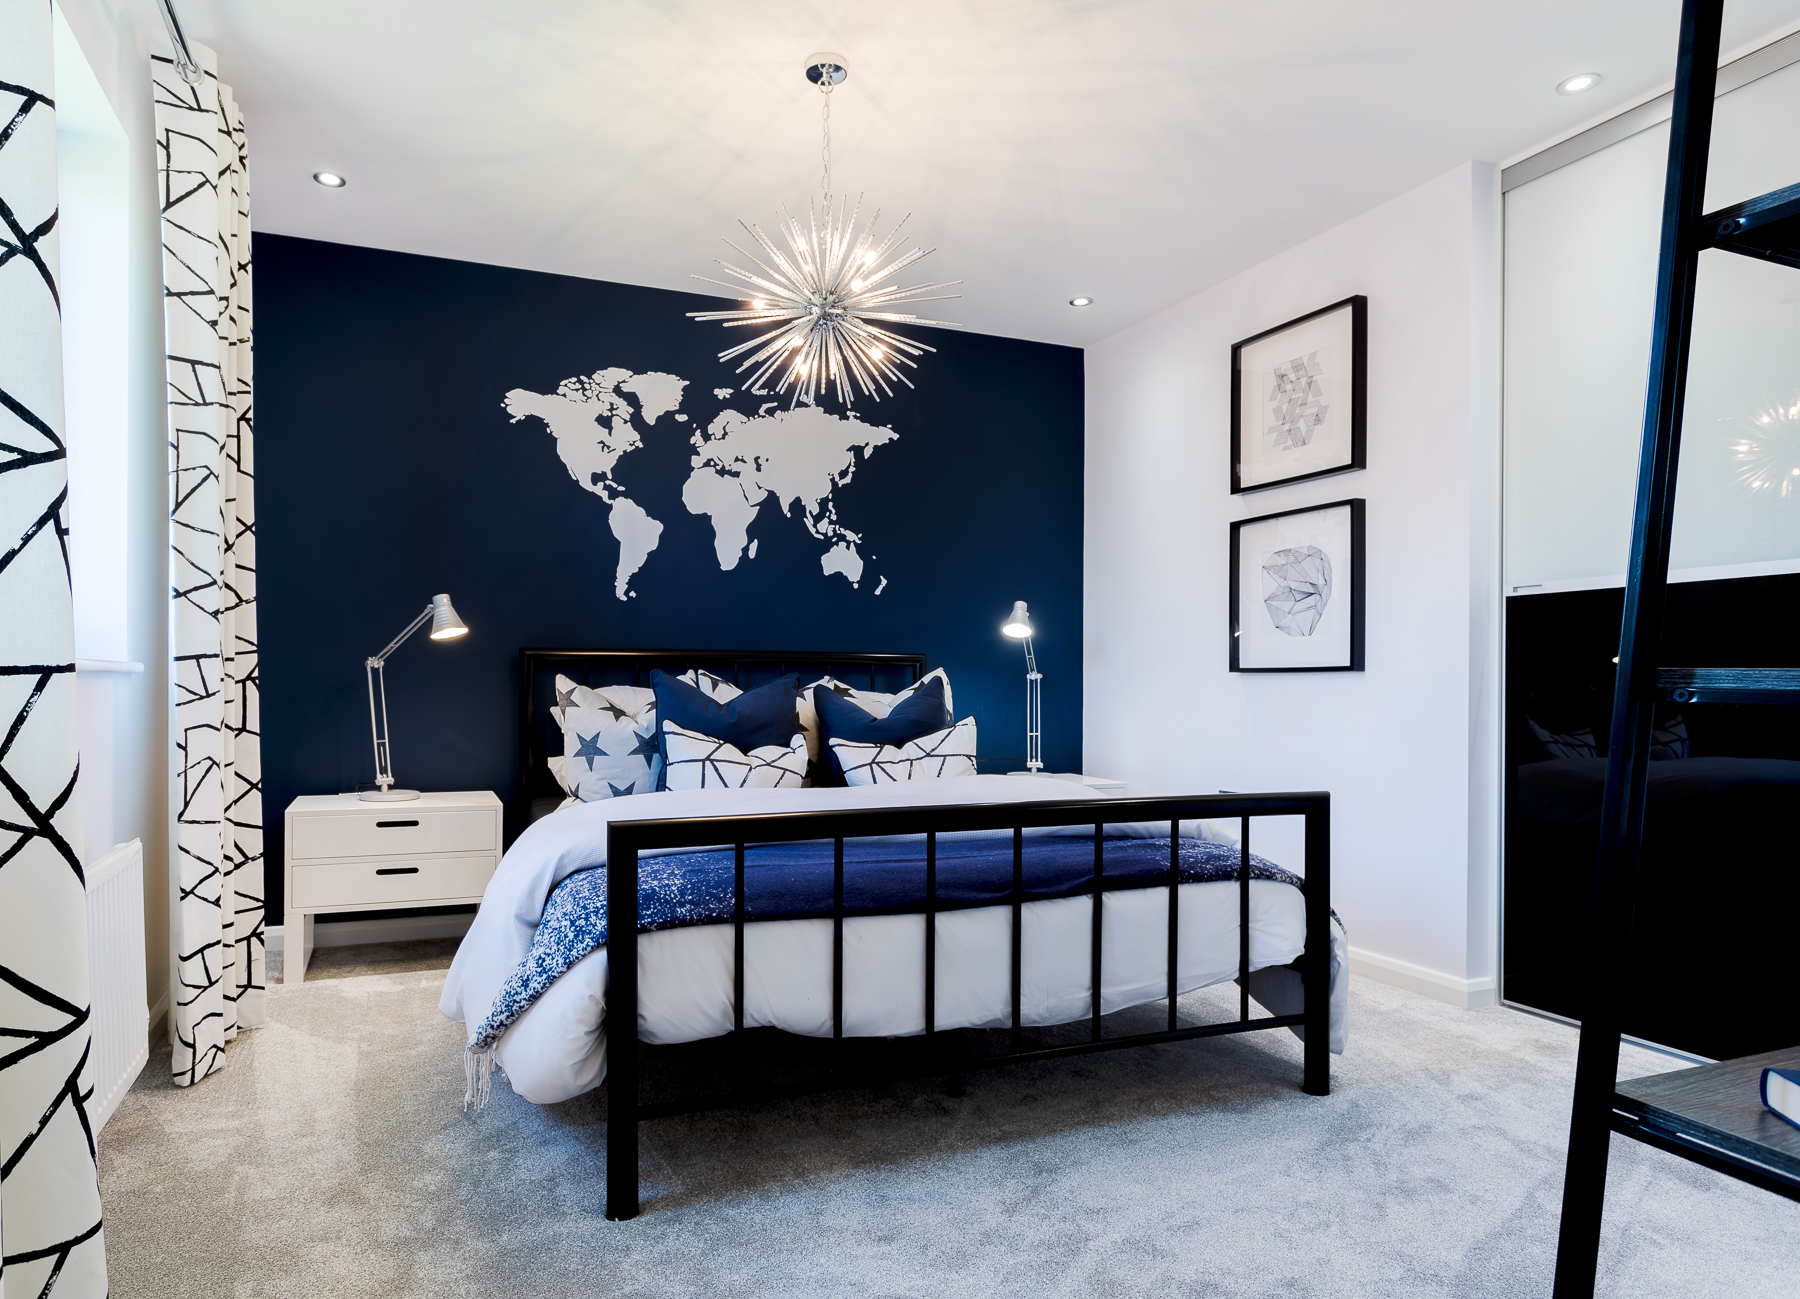 TWES_KinlochGreen_TheStewart_Bedroom3_1_1800x1200